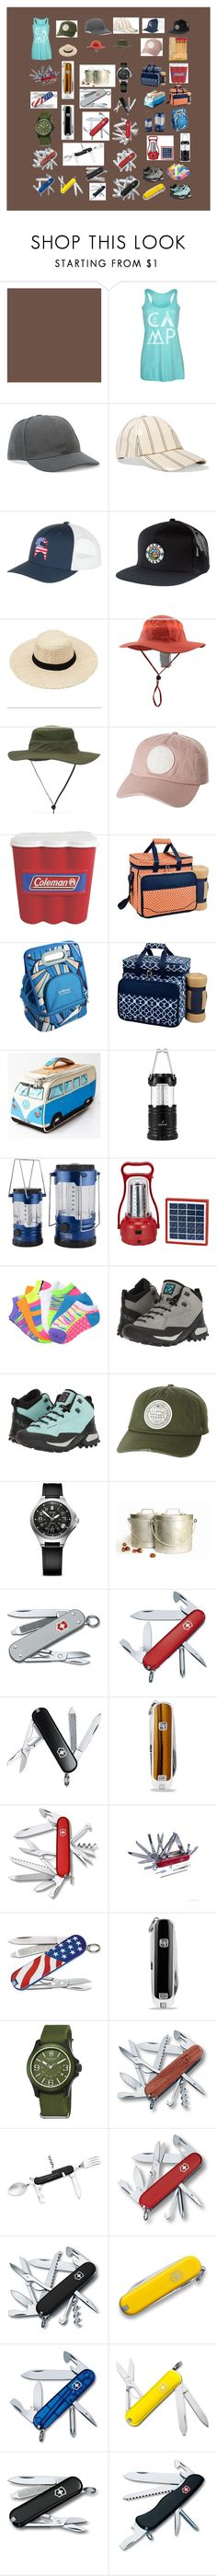 """More Camping Items"" by mikahelaine ❤ liked on Polyvore featuring Country Casuals, Acne Studios, Backcountry, Poler, Billabong, Coleman, Picnic at Ascot, Everlast, Five Ten and Victorinox Swiss Army"